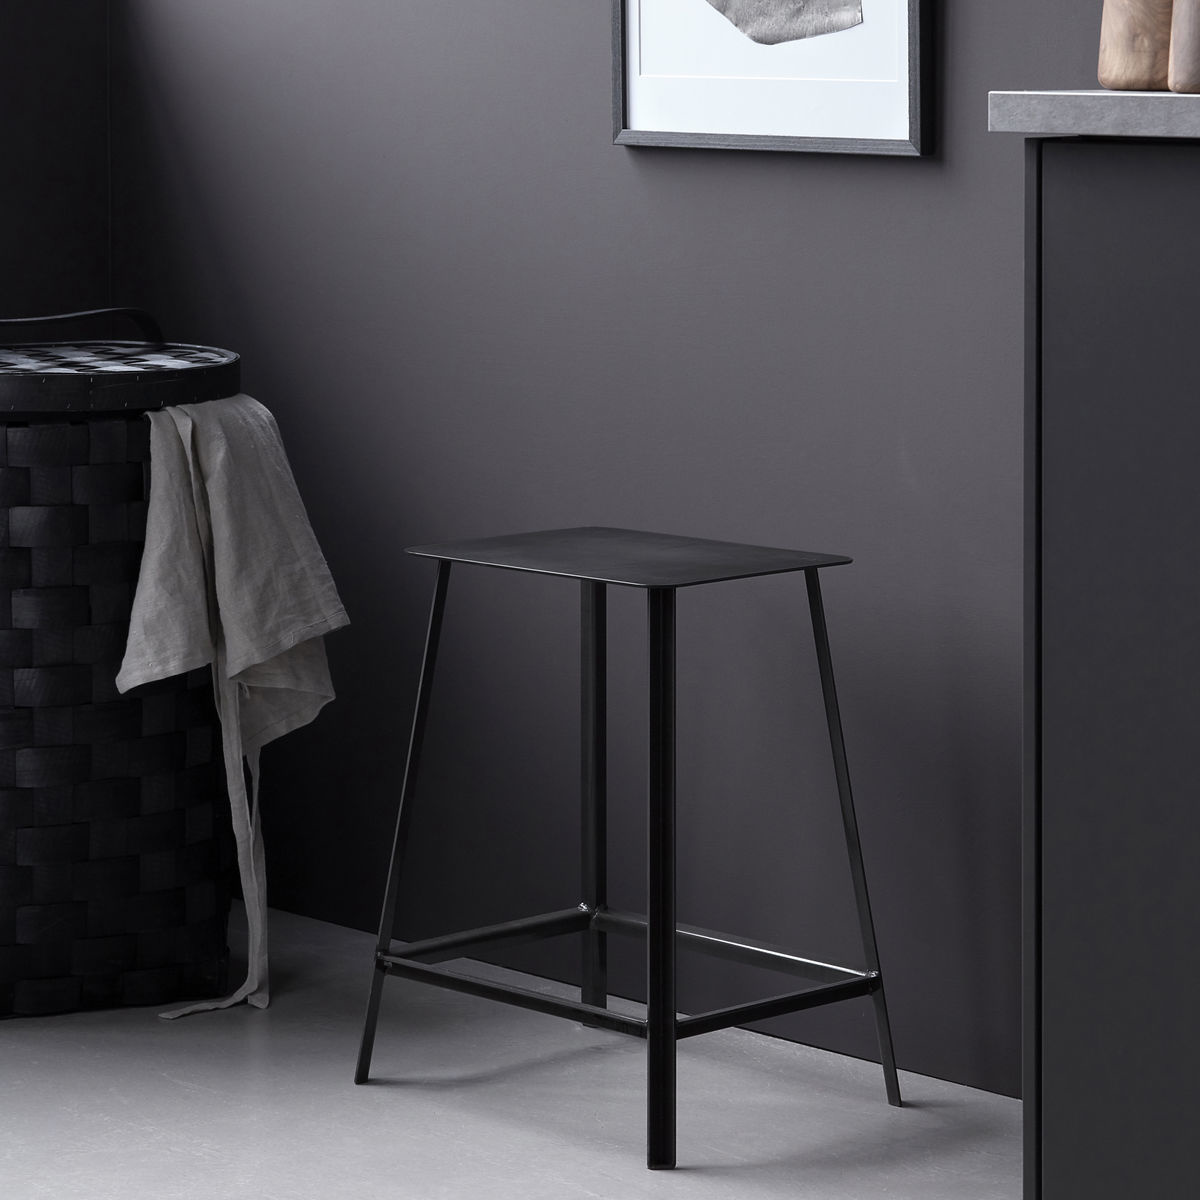 House Doctor gun metal stool Rag